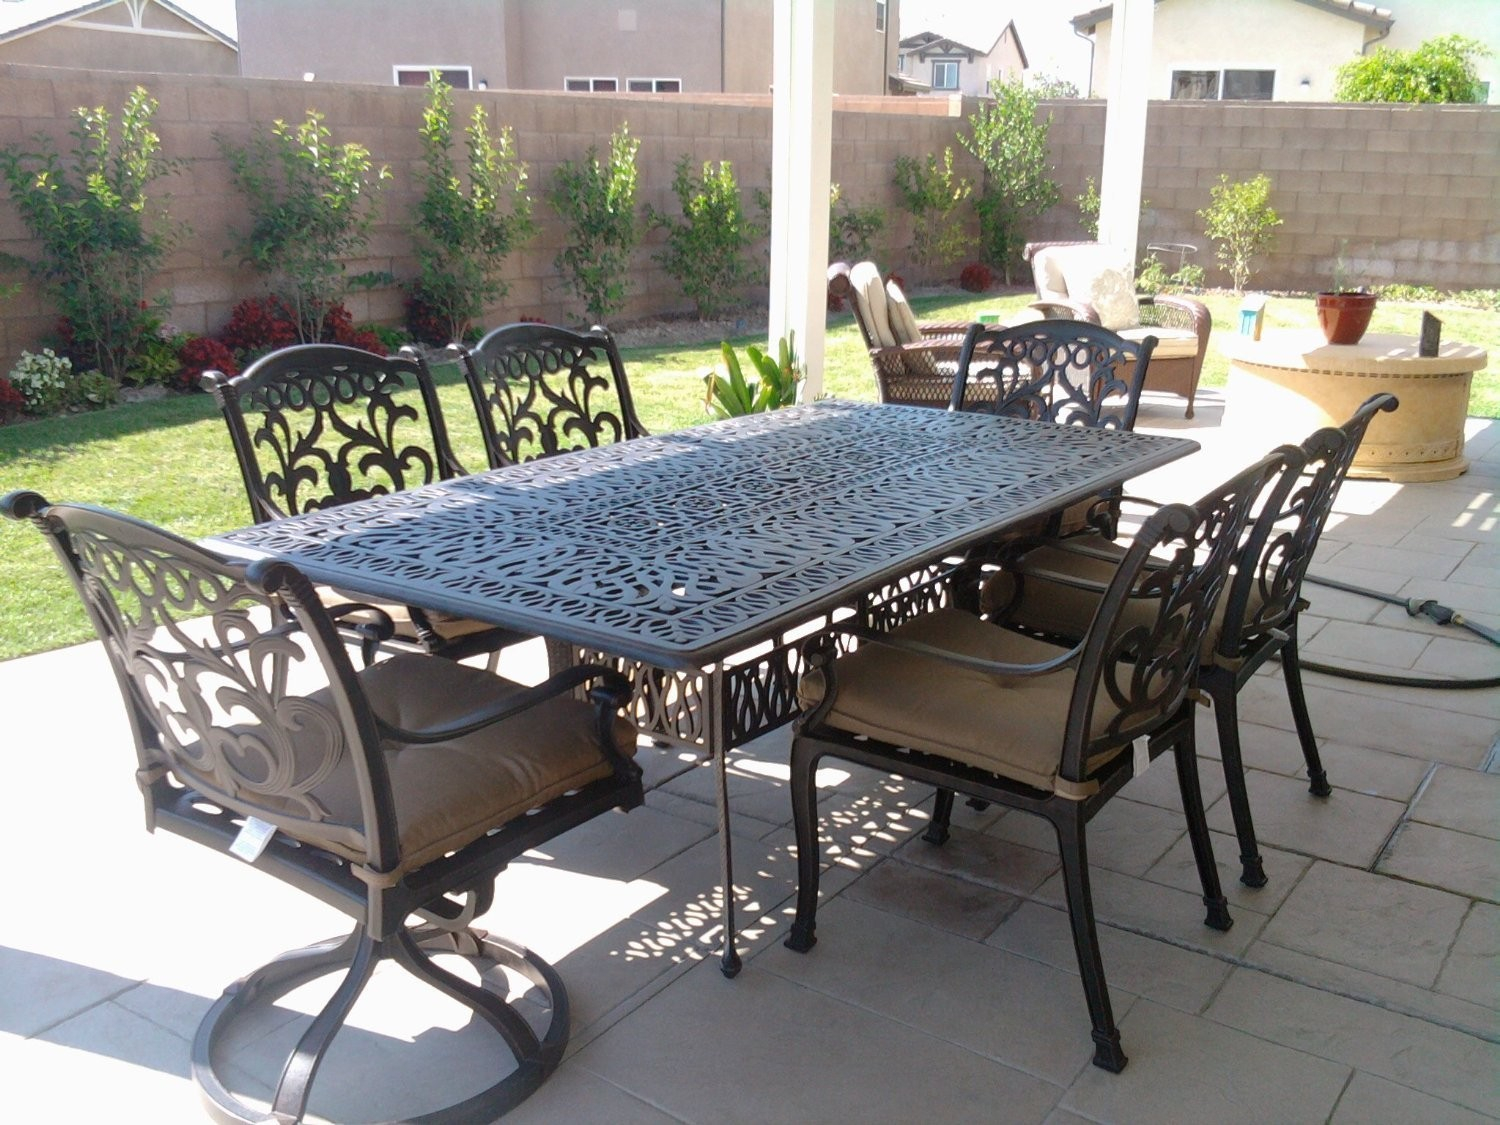 Mandalay Cast Aluminum Powder Coated 7pc Outdoor Patio within dimensions 1500 X 1125